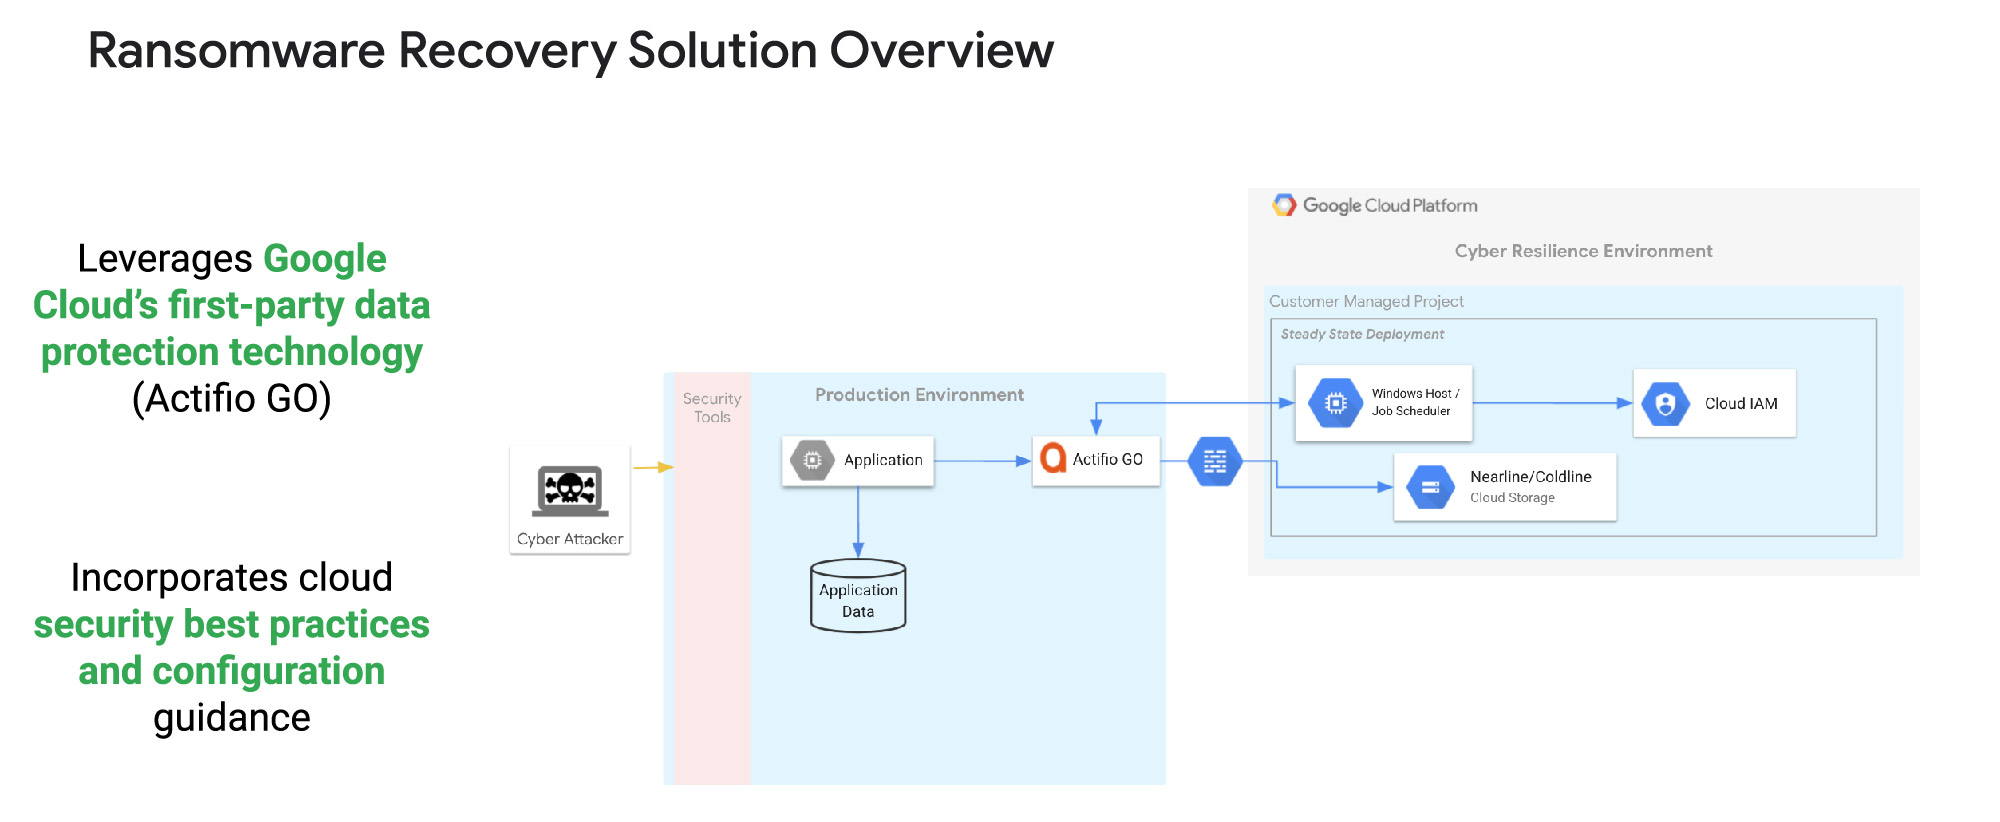 A Google Cloud ransomware recovery architecture leveraging Actifio GO